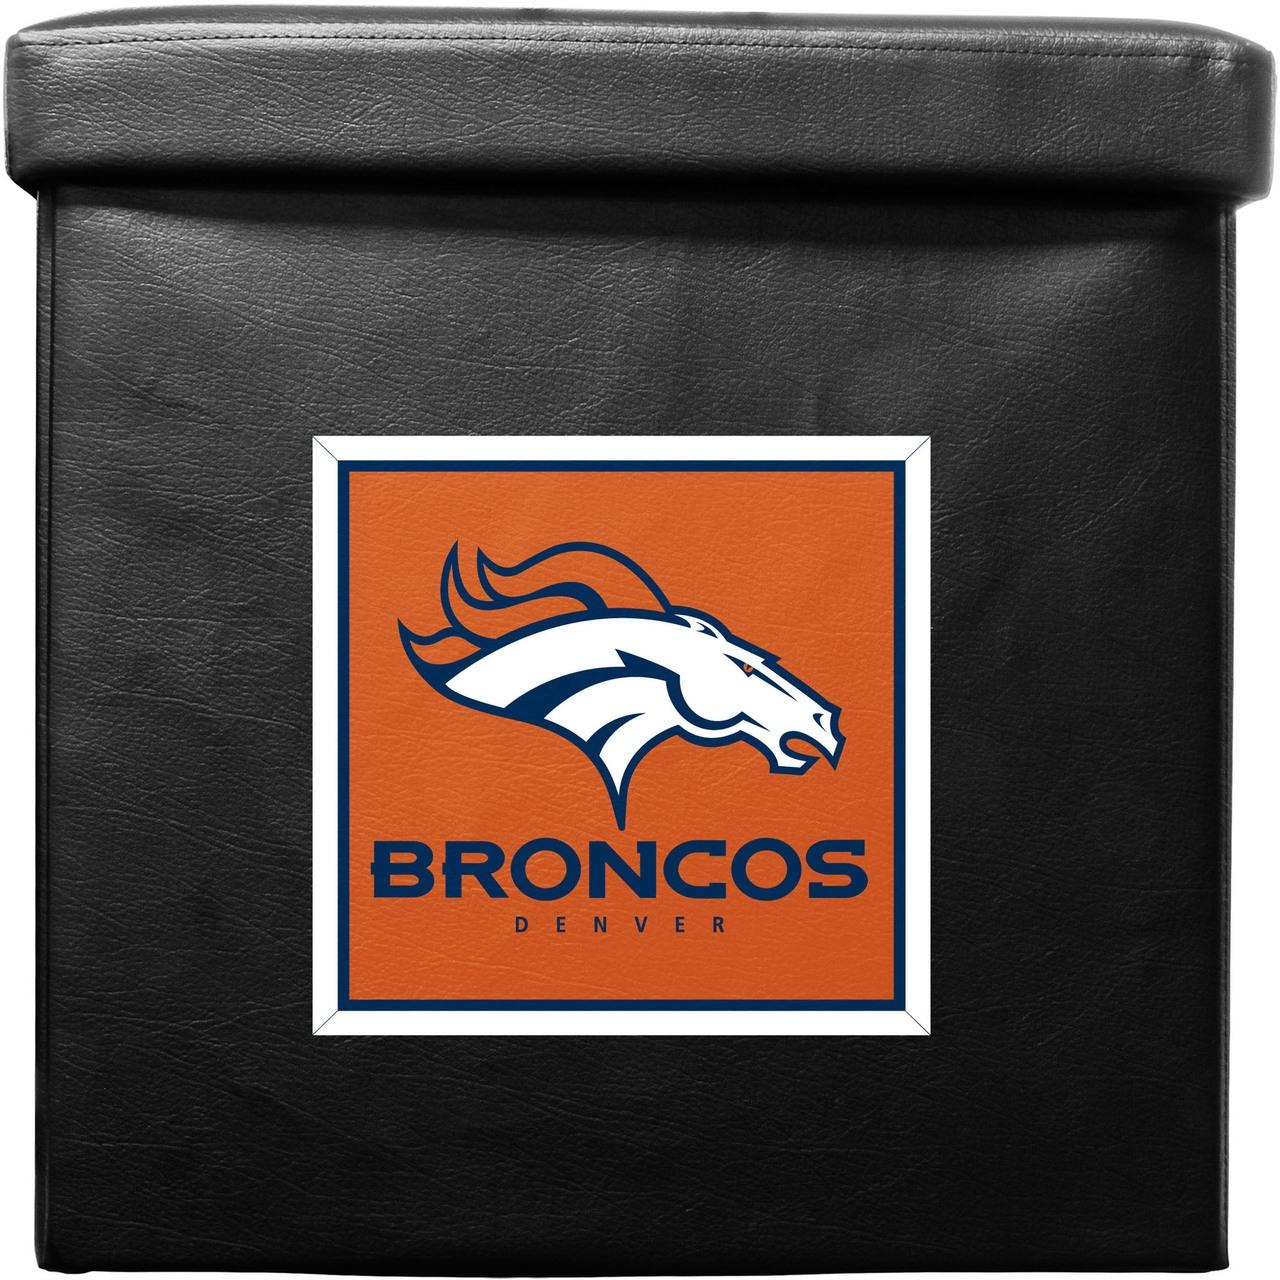 Denver Broncos Ottoman Foldable - 9413103025 - Nfl Football Denver Broncos Indoor Home Office Desk Accessories 9413103025